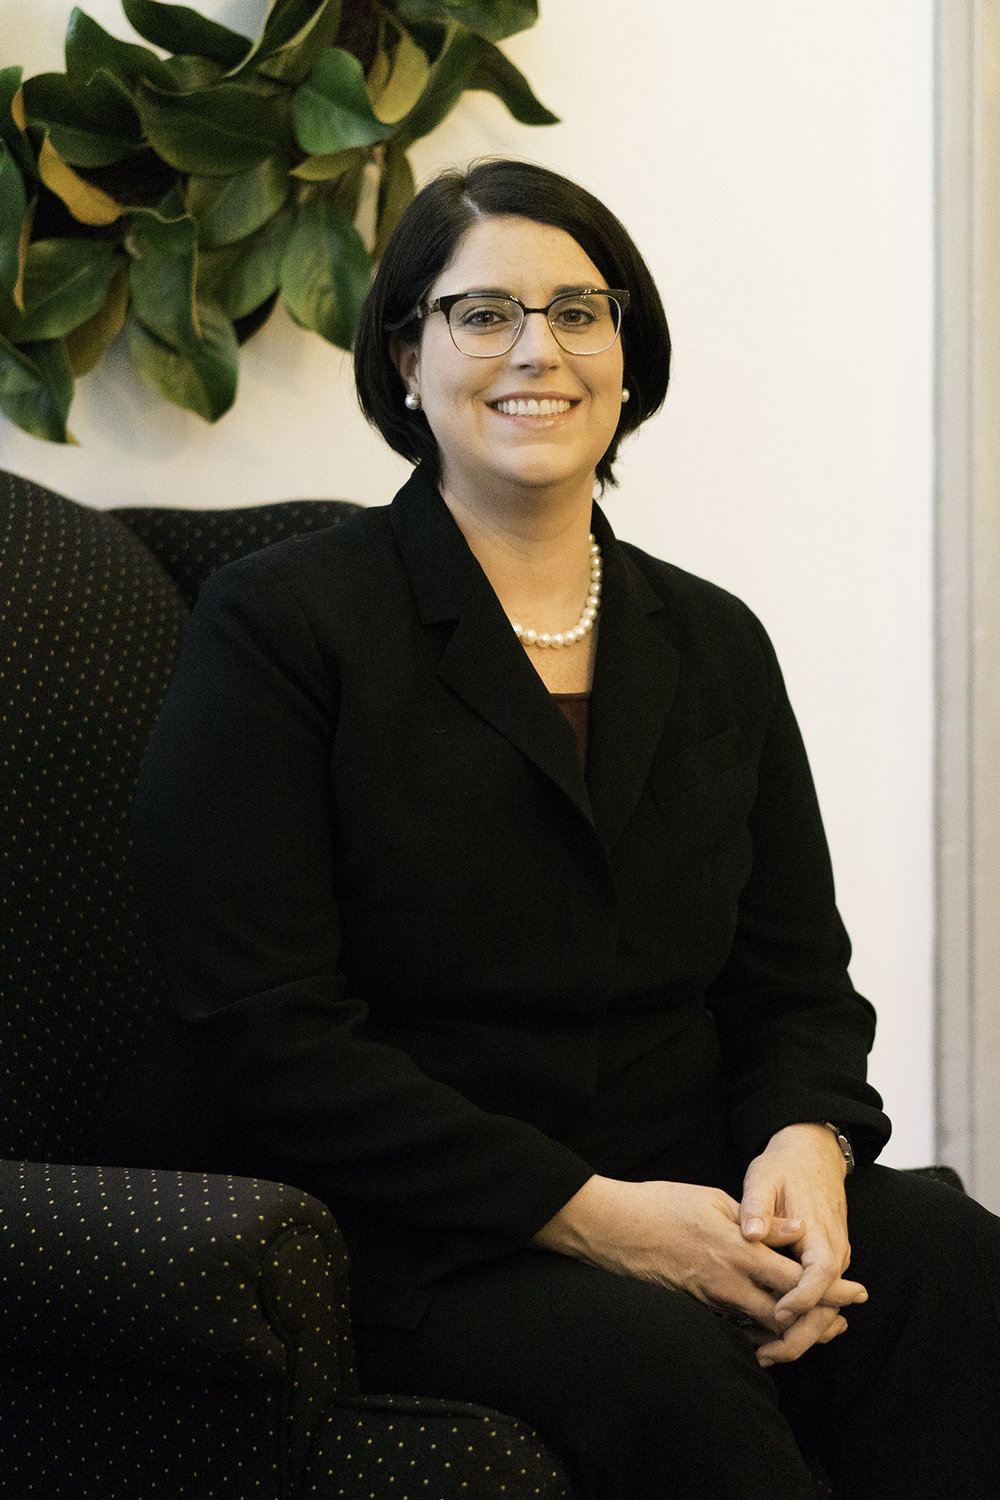 Anita d'Amico - ATTORNEYAnita M. D'Amico has been assisting clients throughout Chester County for over ten years. Prior to founding D'Amico Law, Anita was a partner at Rigler & D'Amico, LLC, where she practiced for many years alongside Earl Rigler. Along with being a member of the Pennsylvania bar, Anita is admitted to practice in the United States District Court in the Eastern District of Pennsylvania. Anita is a member of the Pennsylvania Bar Association and the Chester County Bar Association.